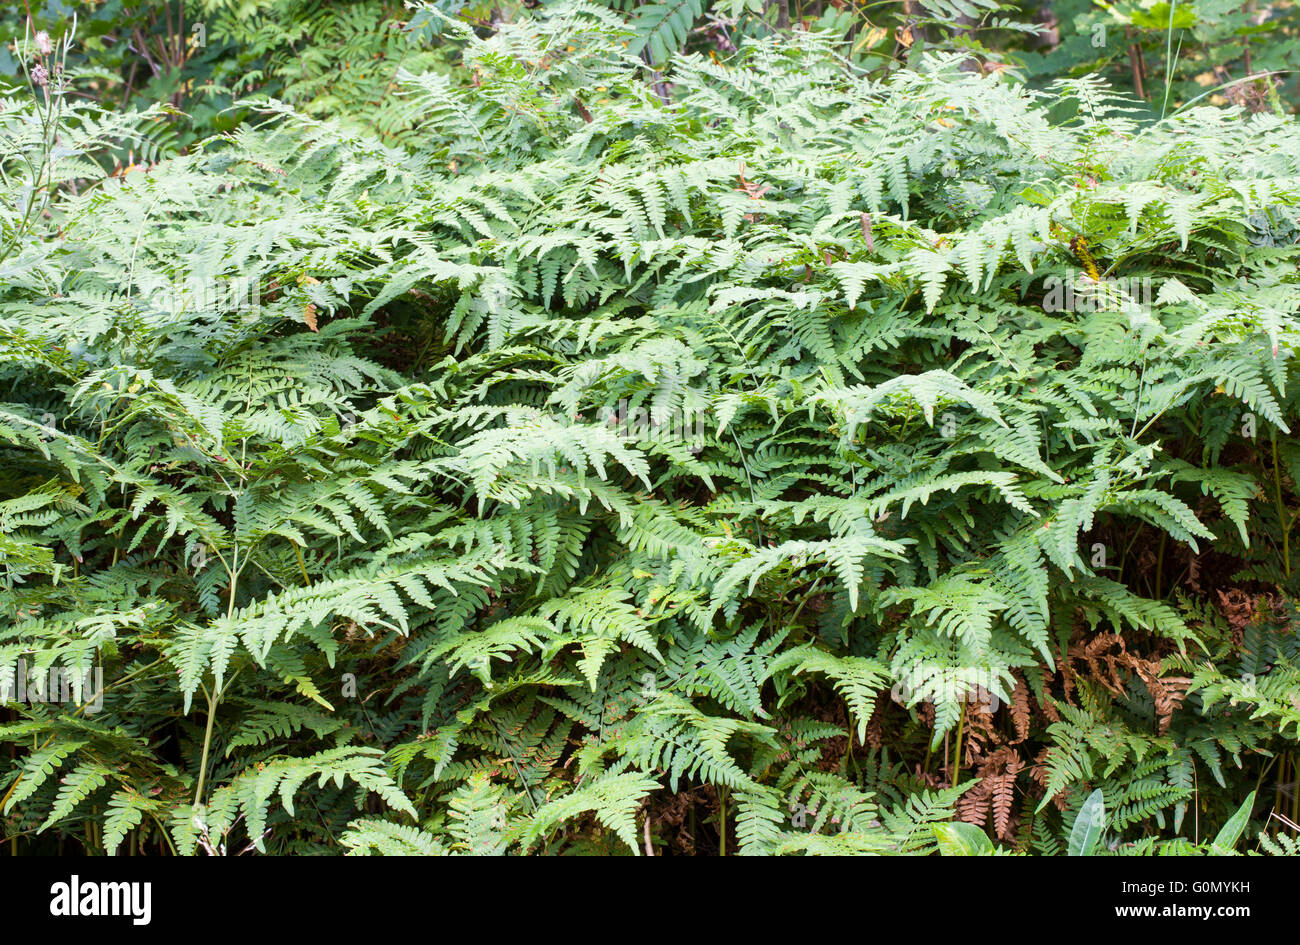 Common bracken (Pteridium aquilinum) - Stock Image